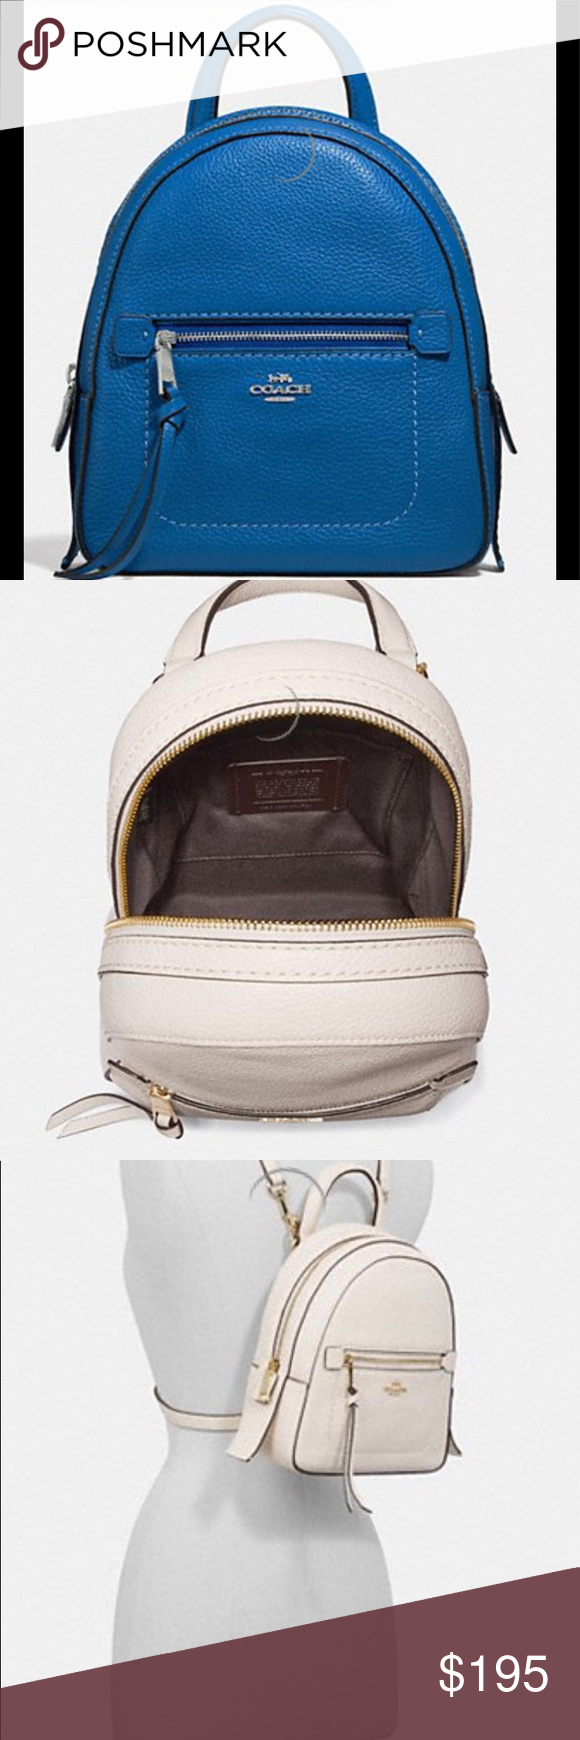 601d0727bbe Coach Andi Backpack Great looking backpack